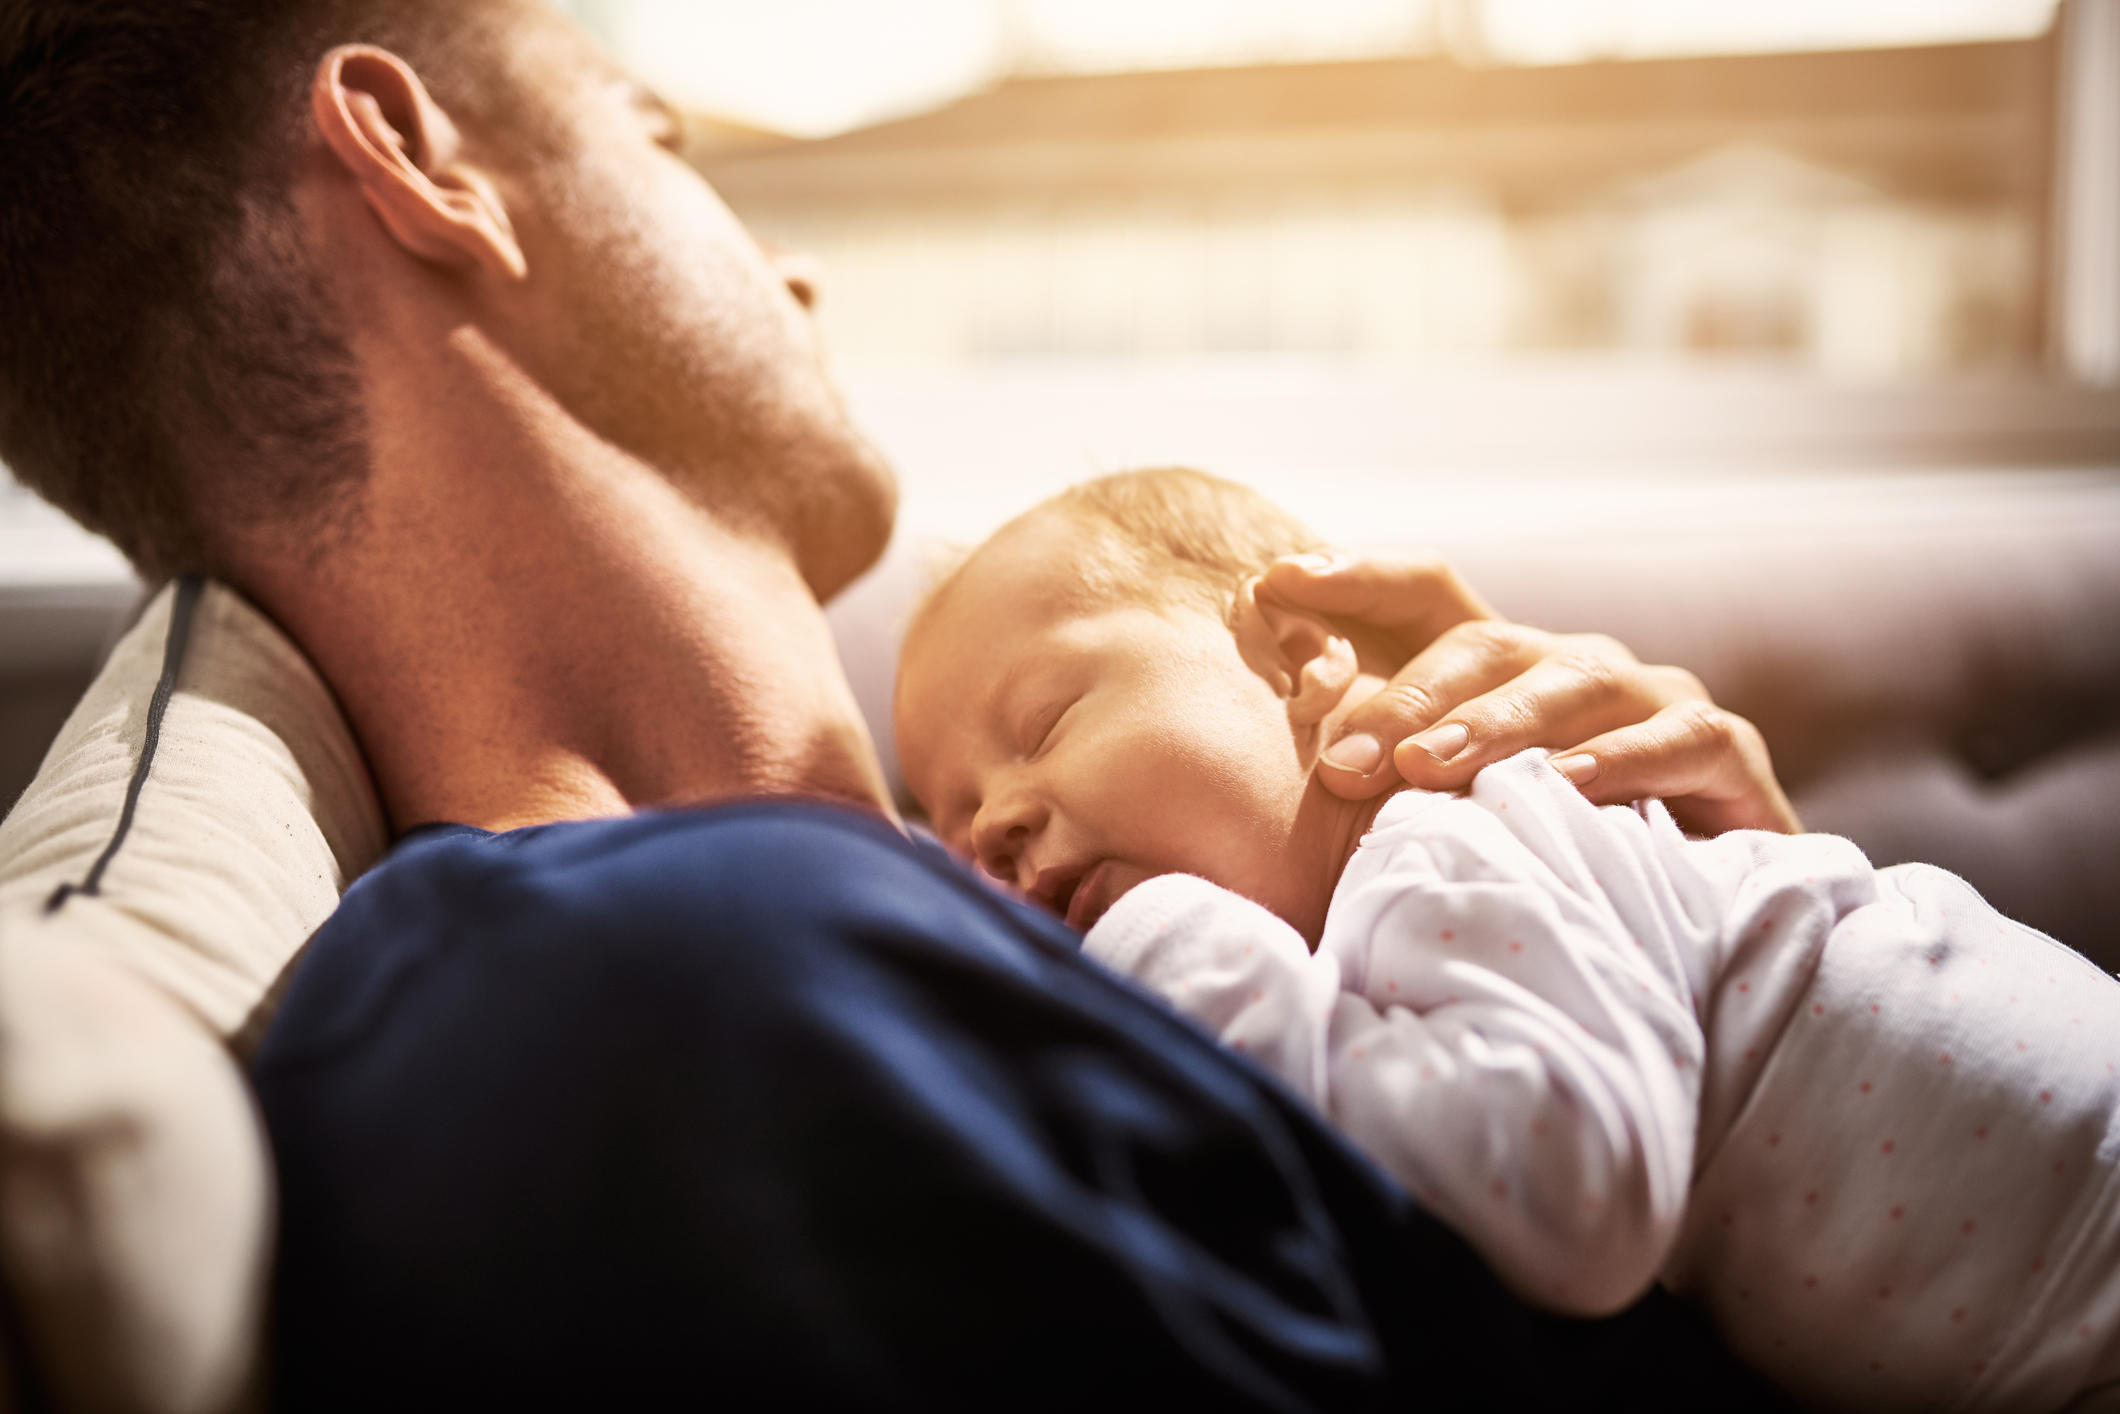 Shot of an adorable baby girl sleeping on her father's chest at home